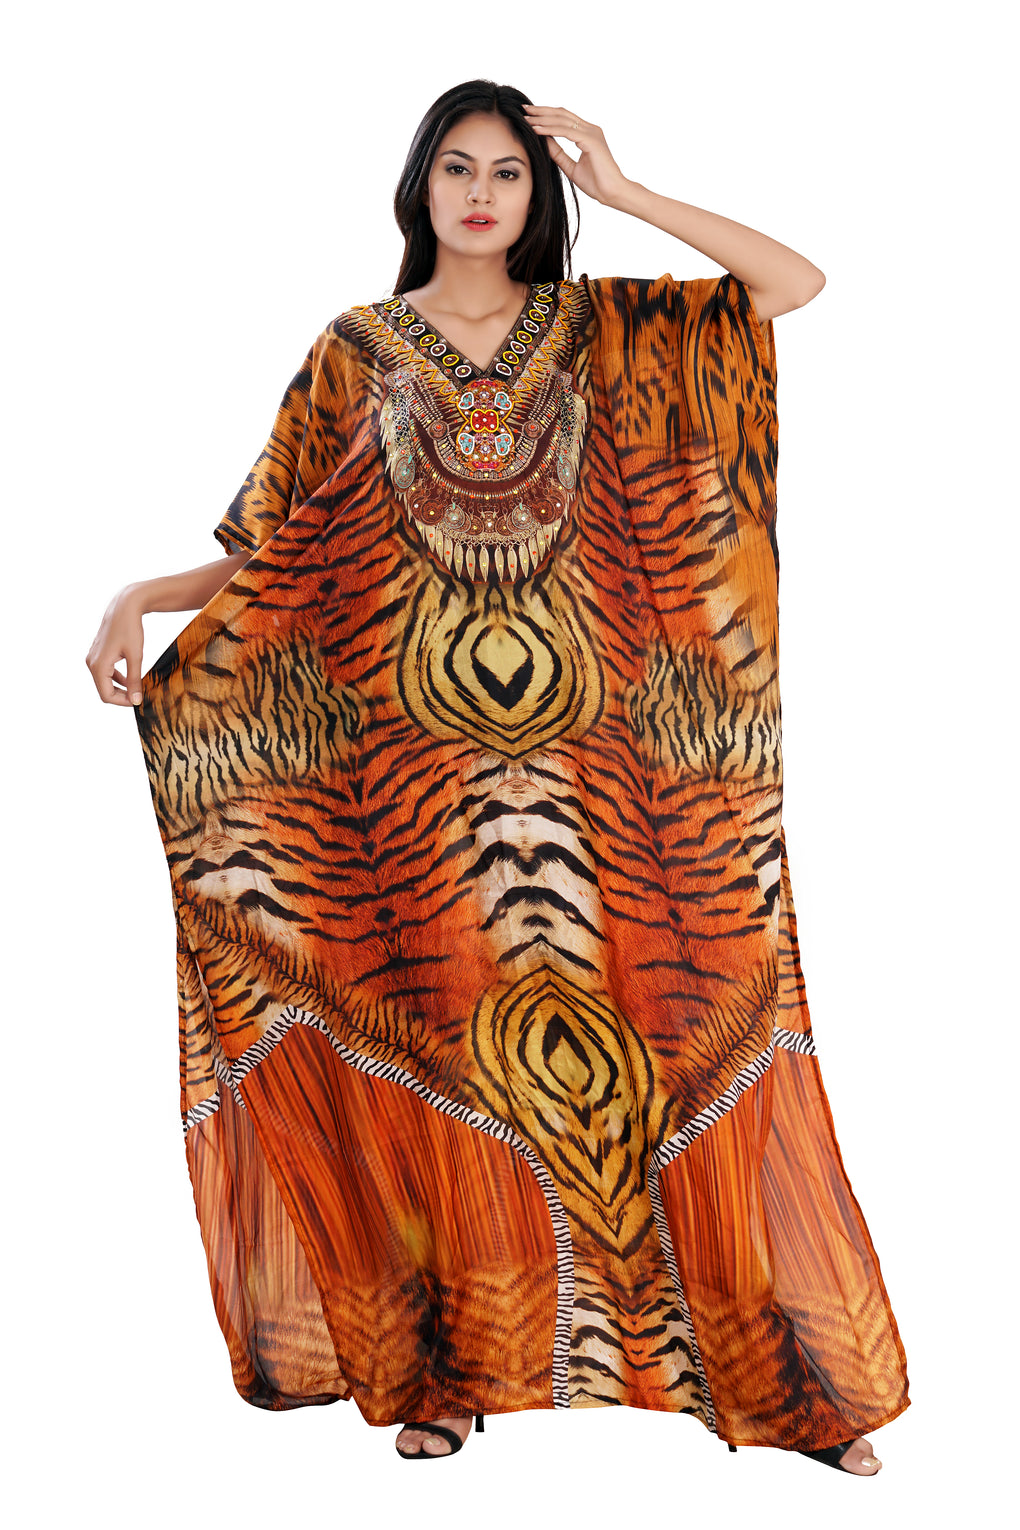 Exquisite Lion Print over Long Silk Kaftan flawless to wear for tropical occasions - Silk kaftan